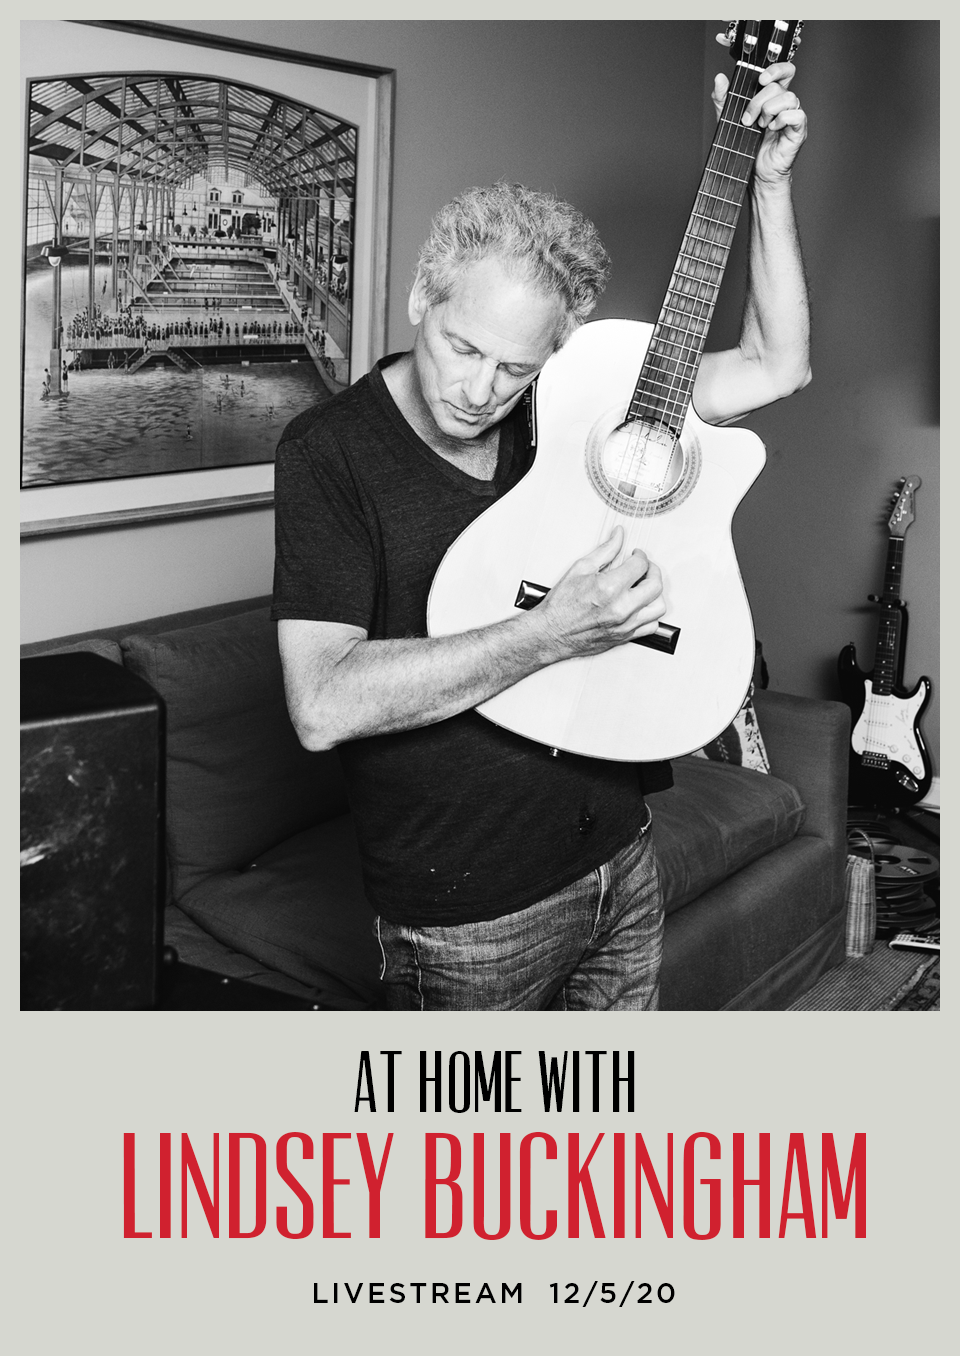 at home with lindsey buckingham livestream concert